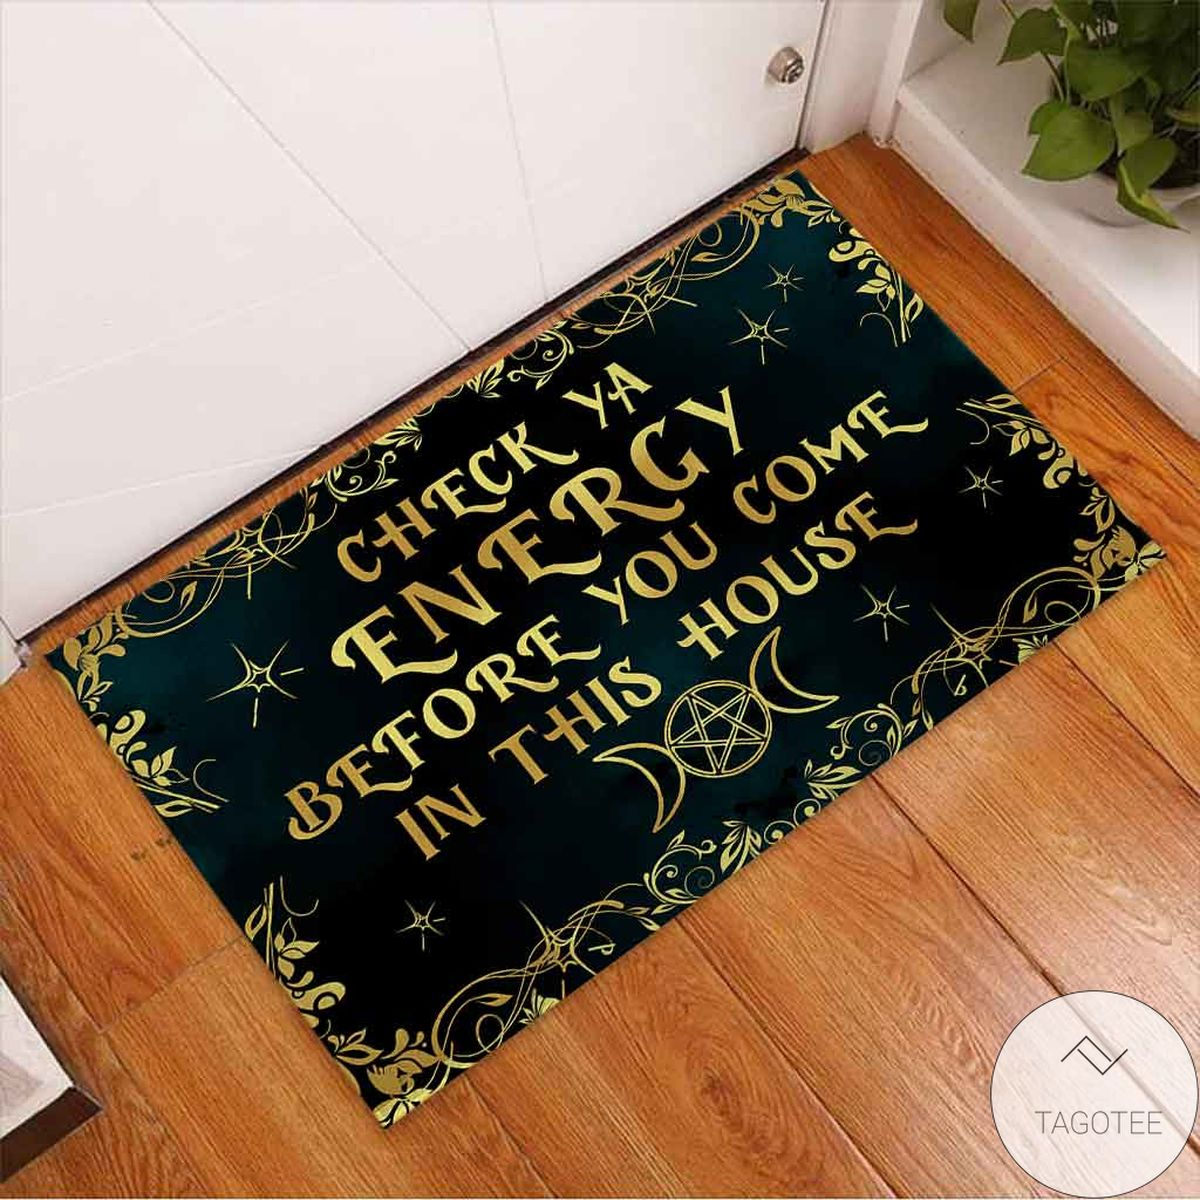 Check Ya Energy Before You Come In This House Witch Halloween Doormat x